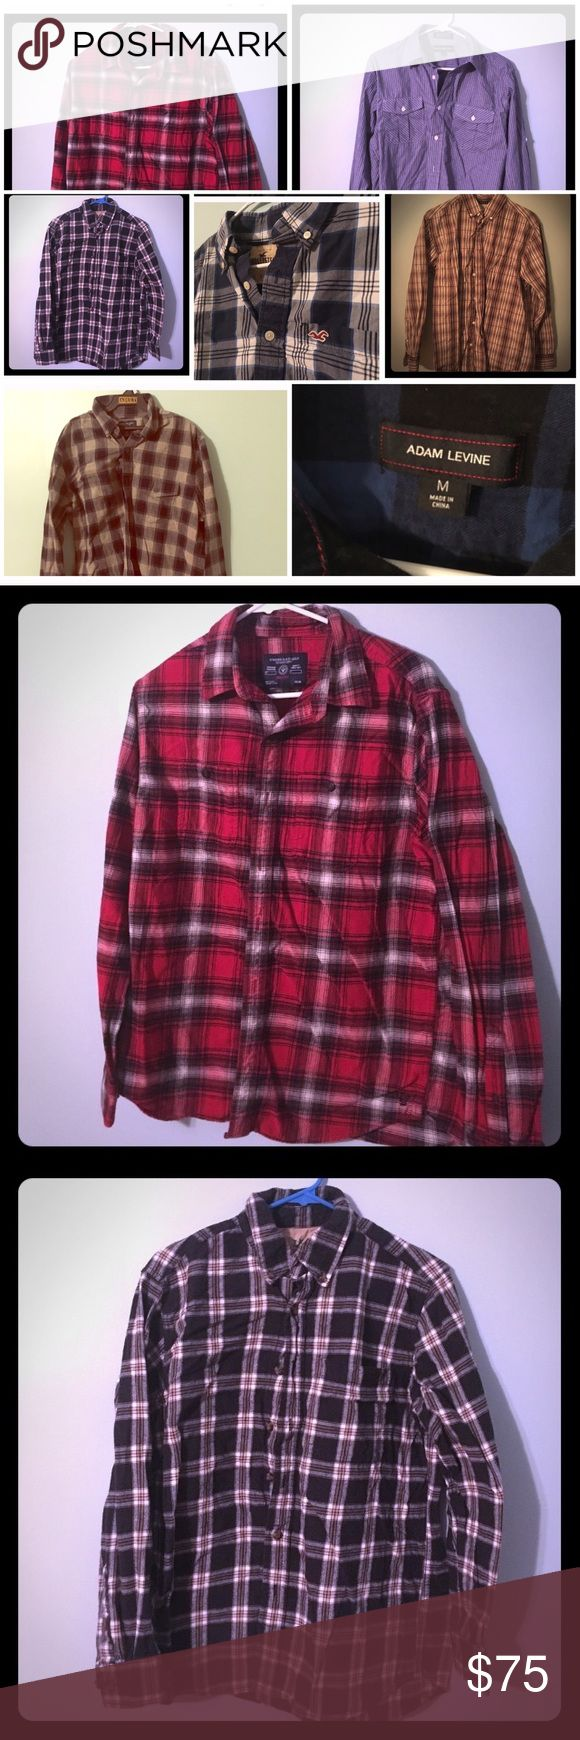 ⭐️ 16 Shirt Bundle! ⭐️ American Eagle, Old Navy 👕 ⭐️ Amazing deal!!!! ⭐️ Selling 16 button-down collar shirt bundle! All size M. Bundle includes: 4 Beverly Hills Polo Club, 3 American Eagle Outfitters, 3 Adam Levine, 1 Old Navy, 1 Hollister, 1 Authentic 44mm Legendary Workwear, 1 Van Heiden (neck size 18 dress shirt), 1 Stretch and 1 Outdoor Life Campside Flannel. Be the first to score this fantastic deal! 🛍 Shirts Casual Button Down Shirts